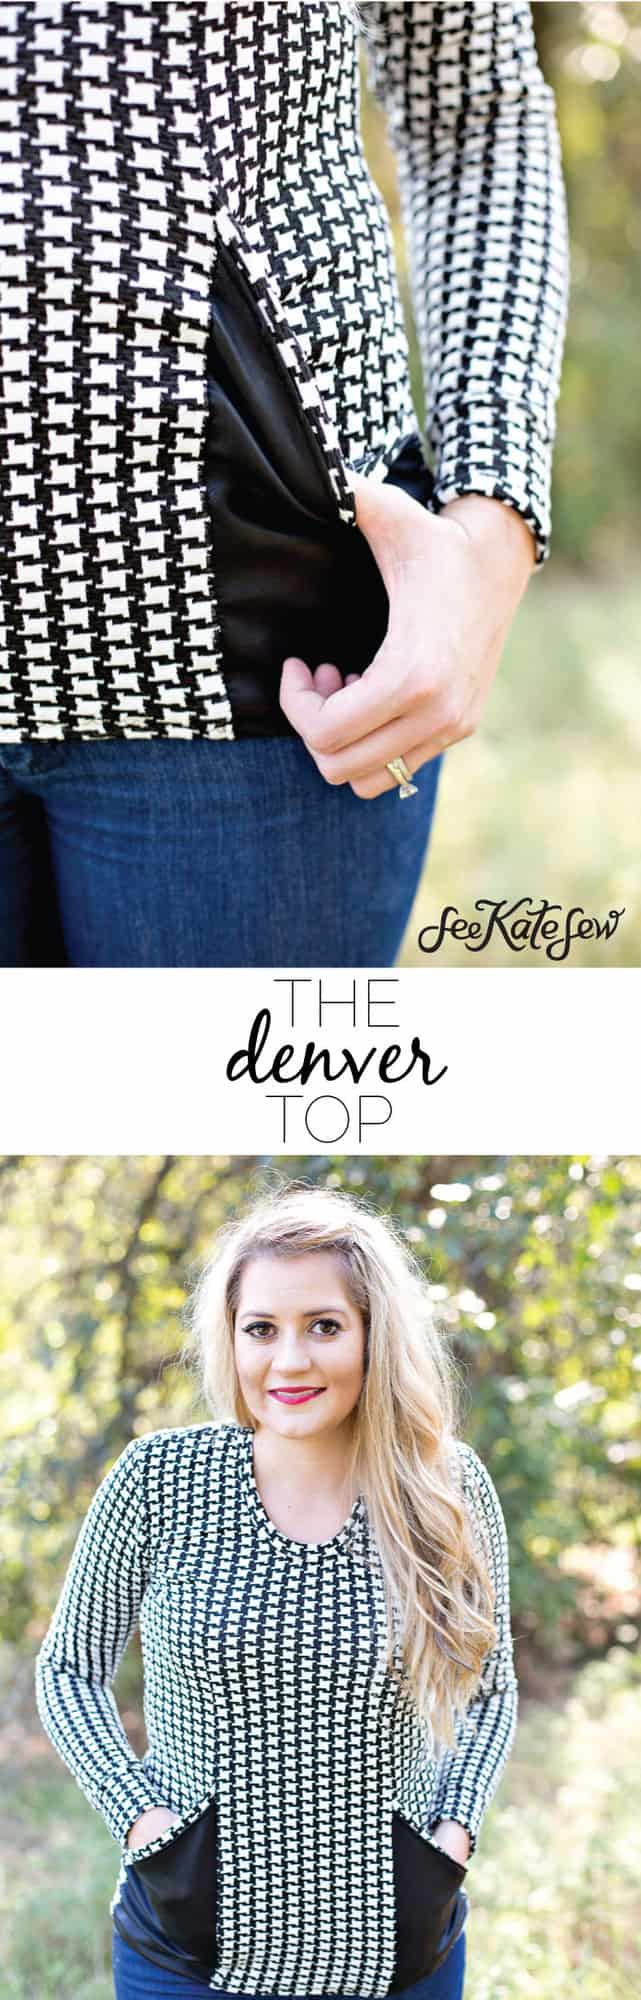 The Denver Top|See Kate Sew